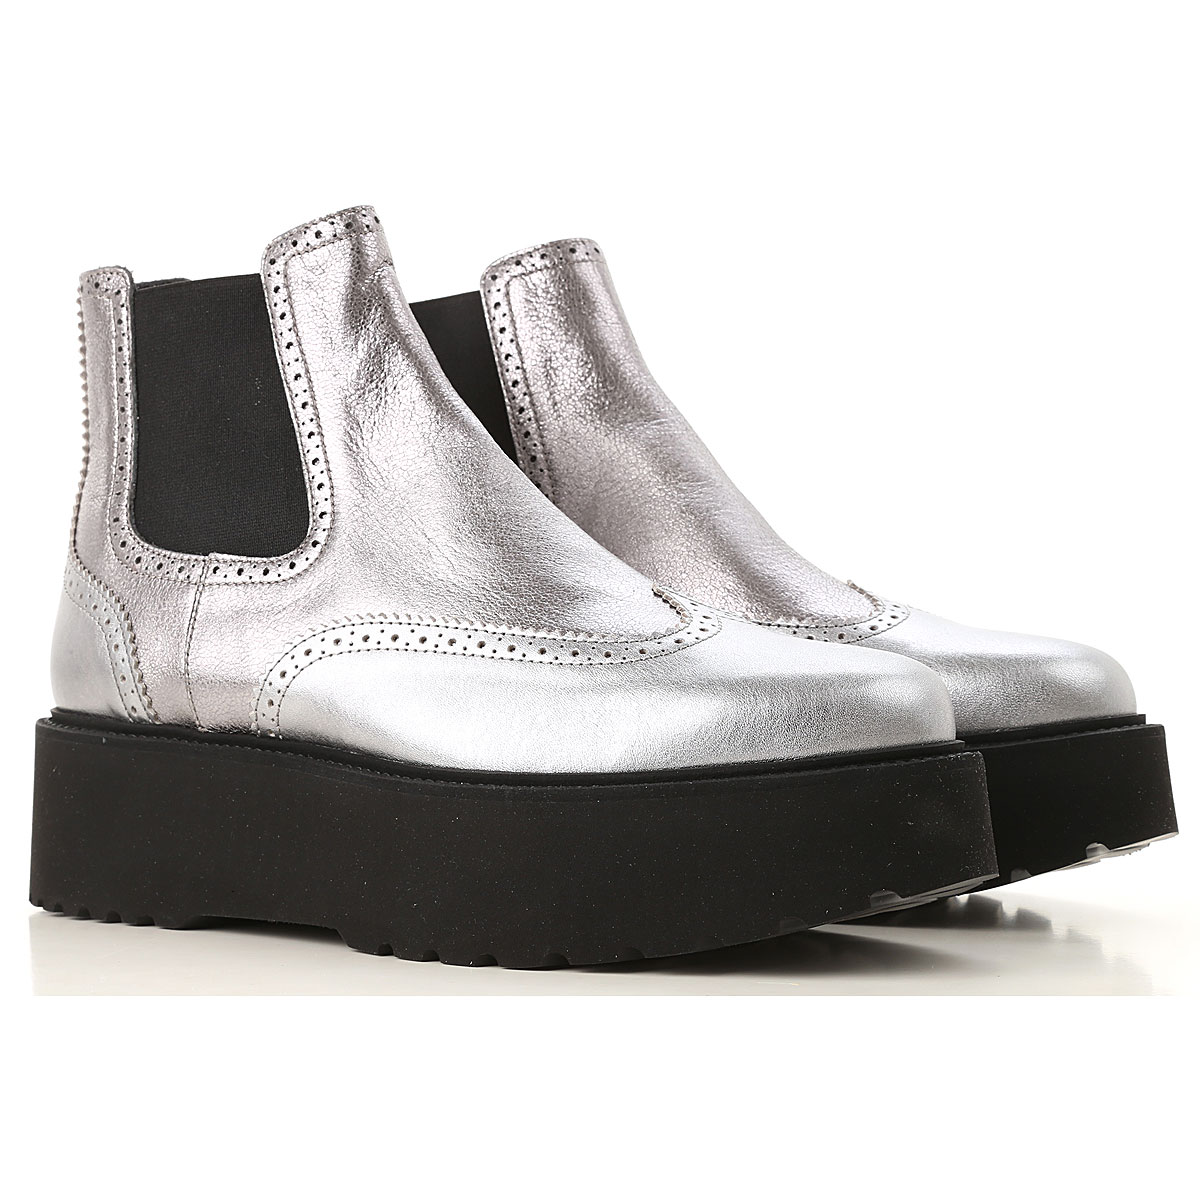 Hogan Chelsea Boots for Women, Silver, Leather, 2019, 10 5 9